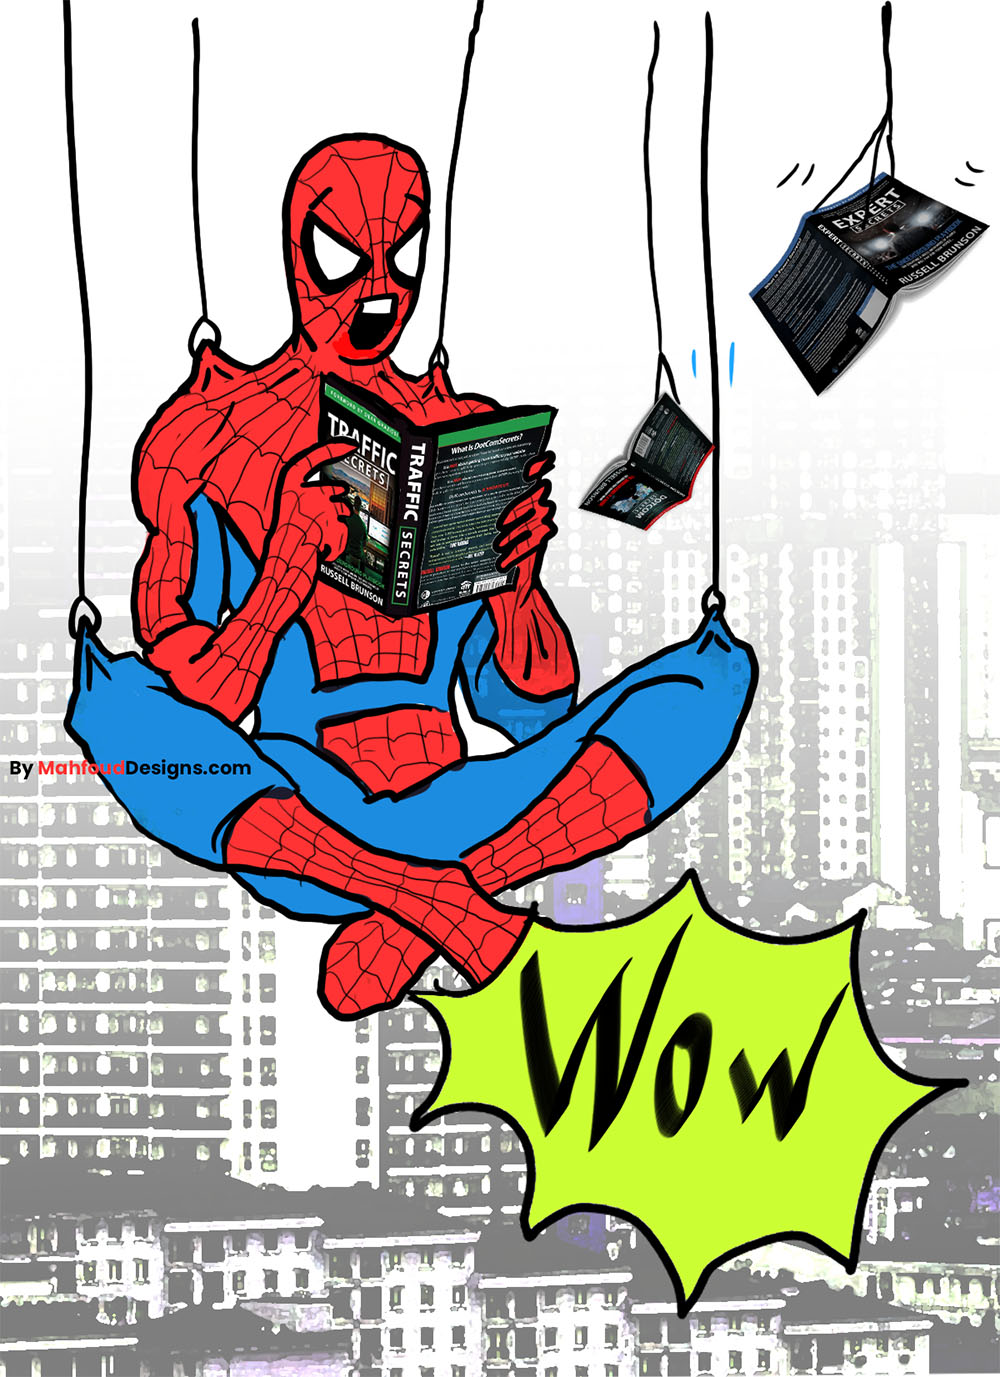 traffic secrets book spiderman